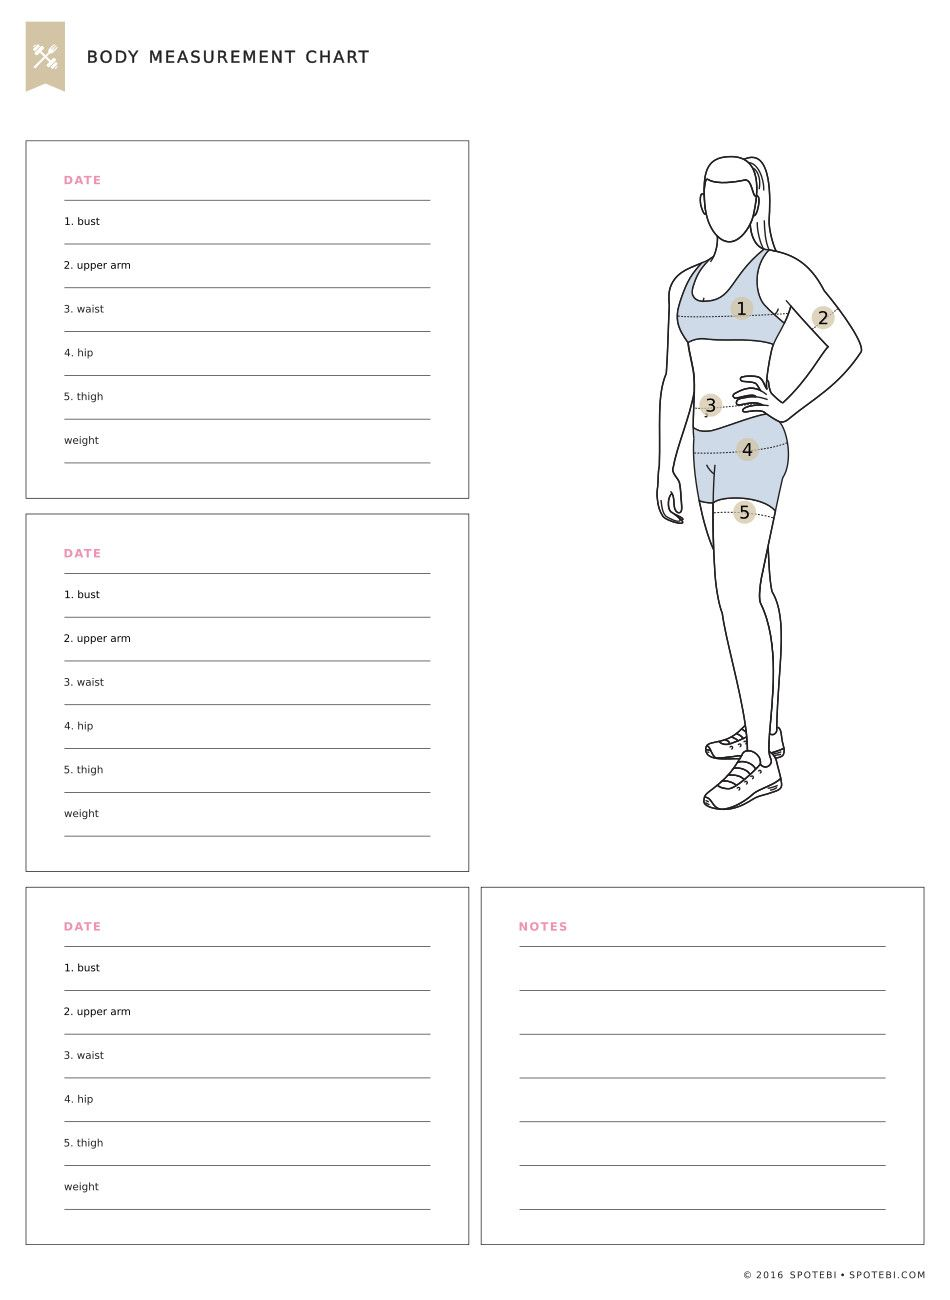 Print our free body measurement chart and measure each part every weeks get also operation fit pinterest fitness rh